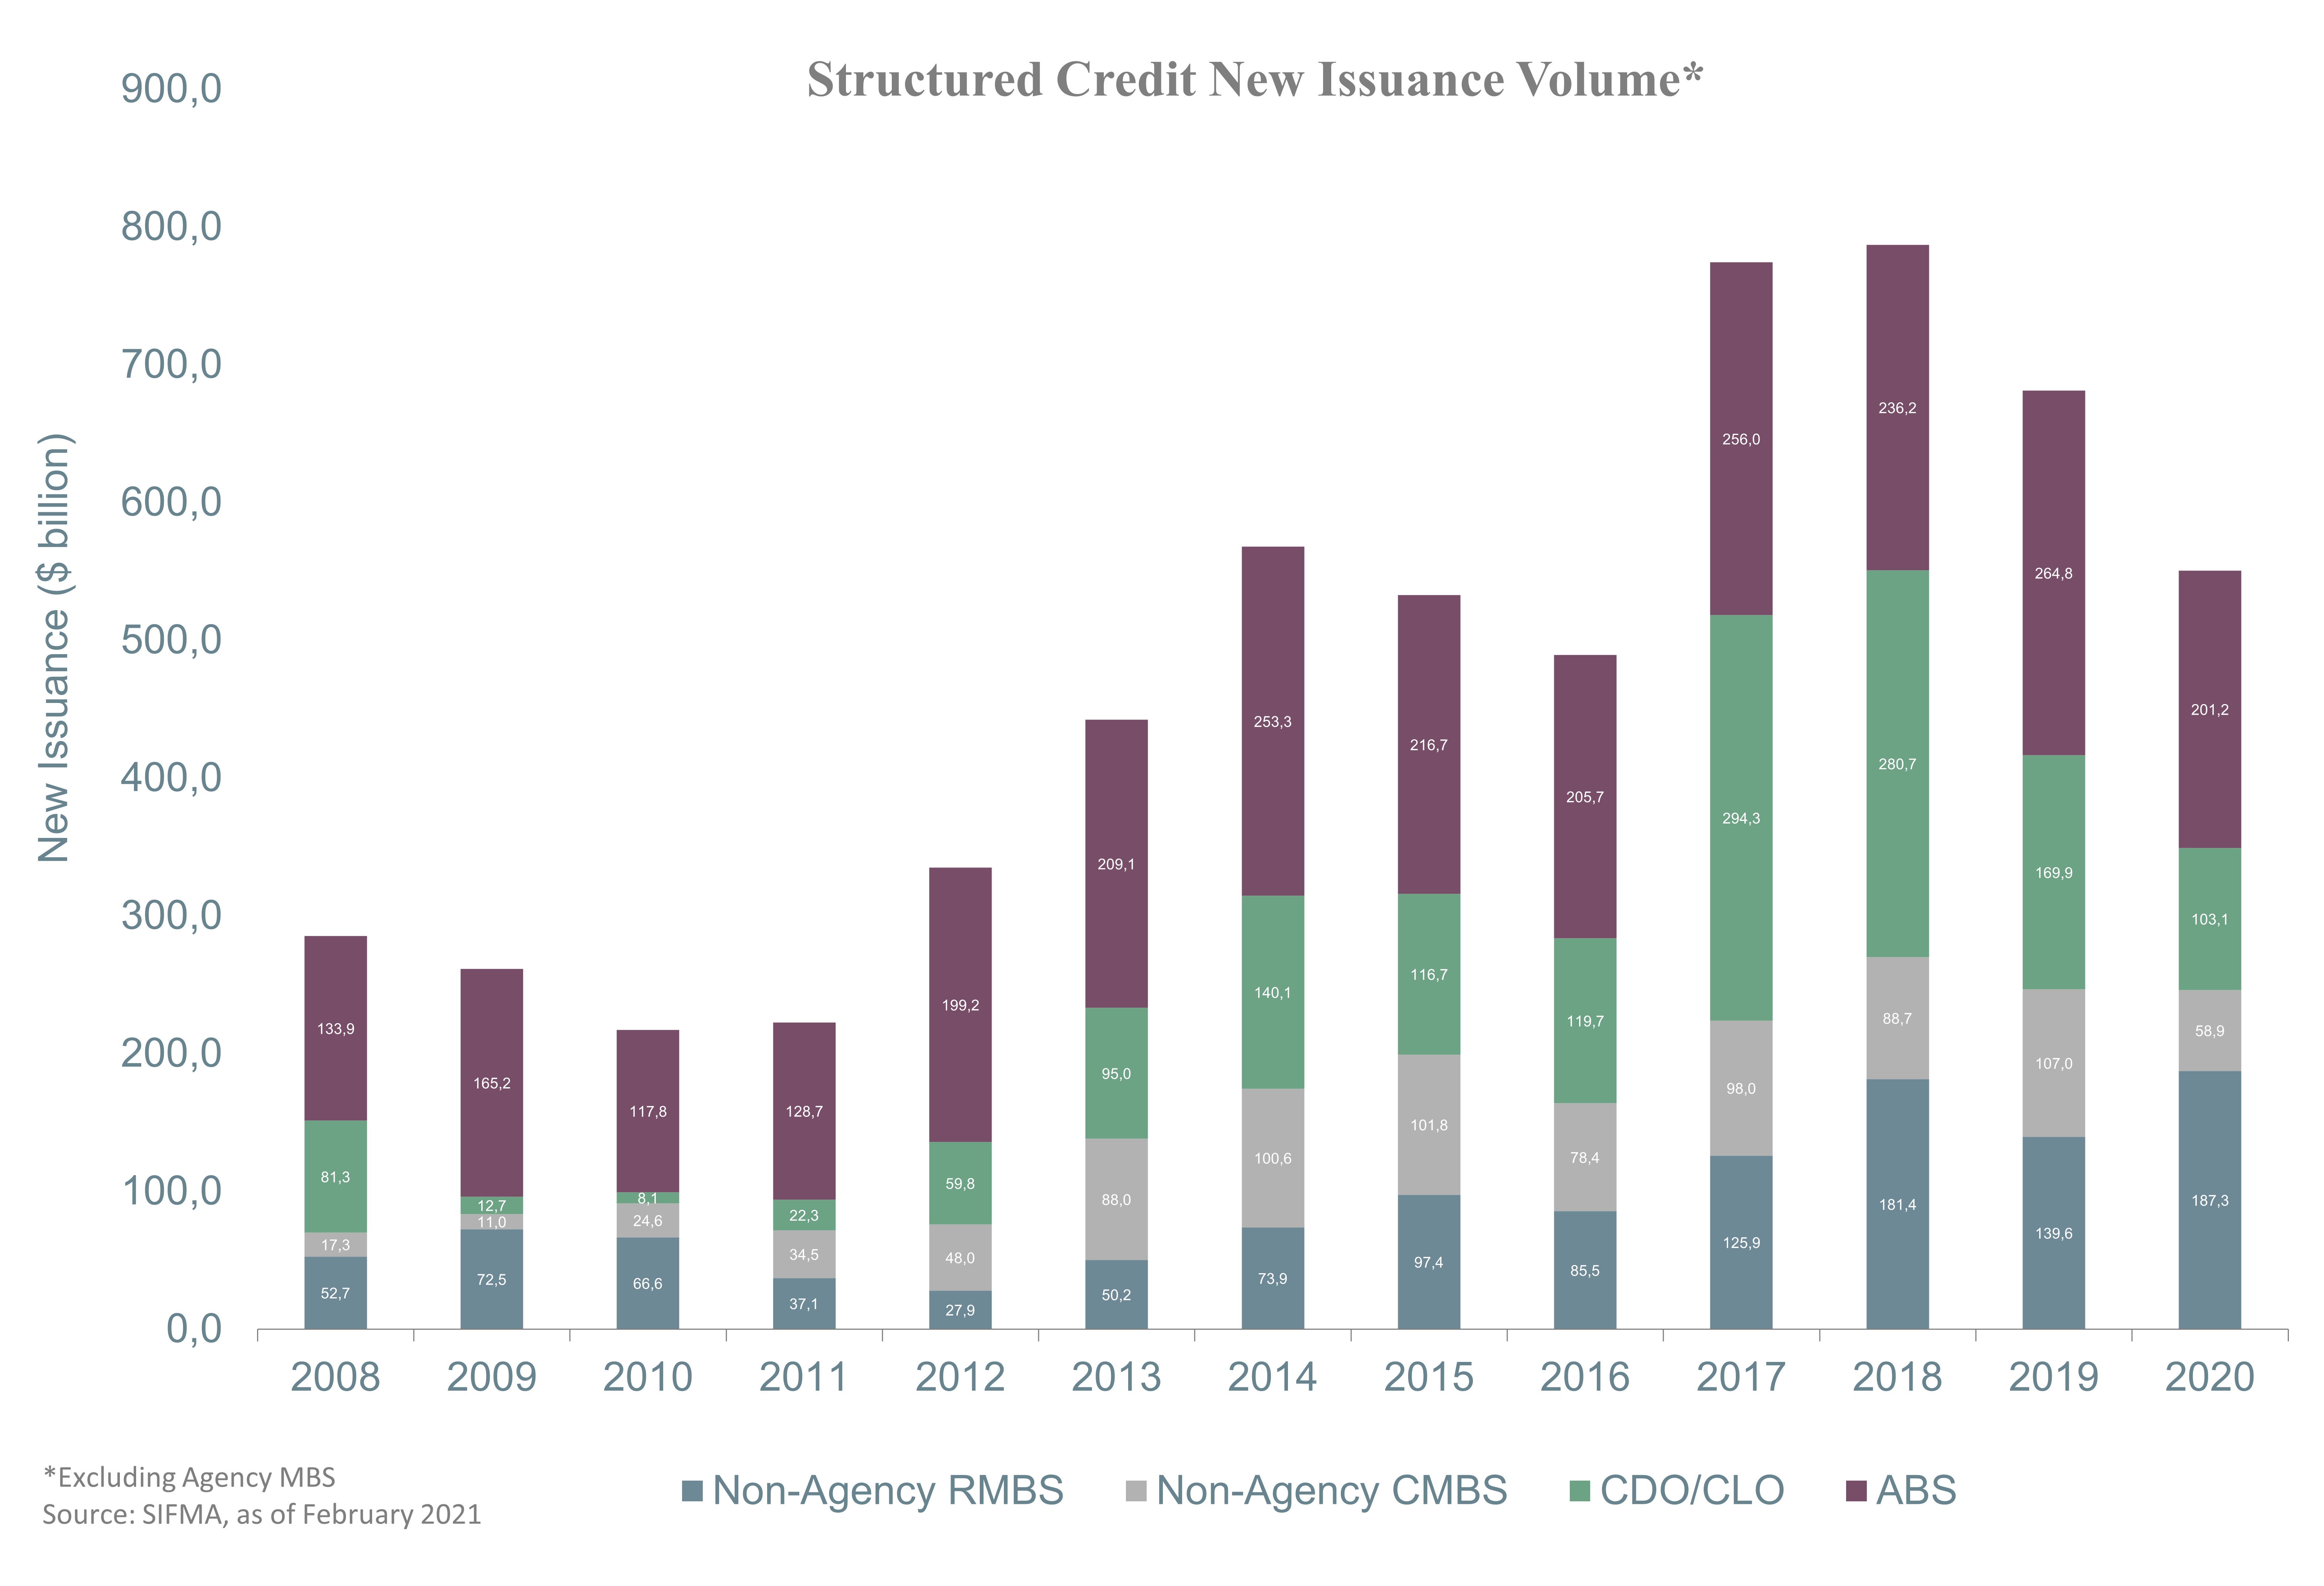 Structured Credit New Issuance Volume